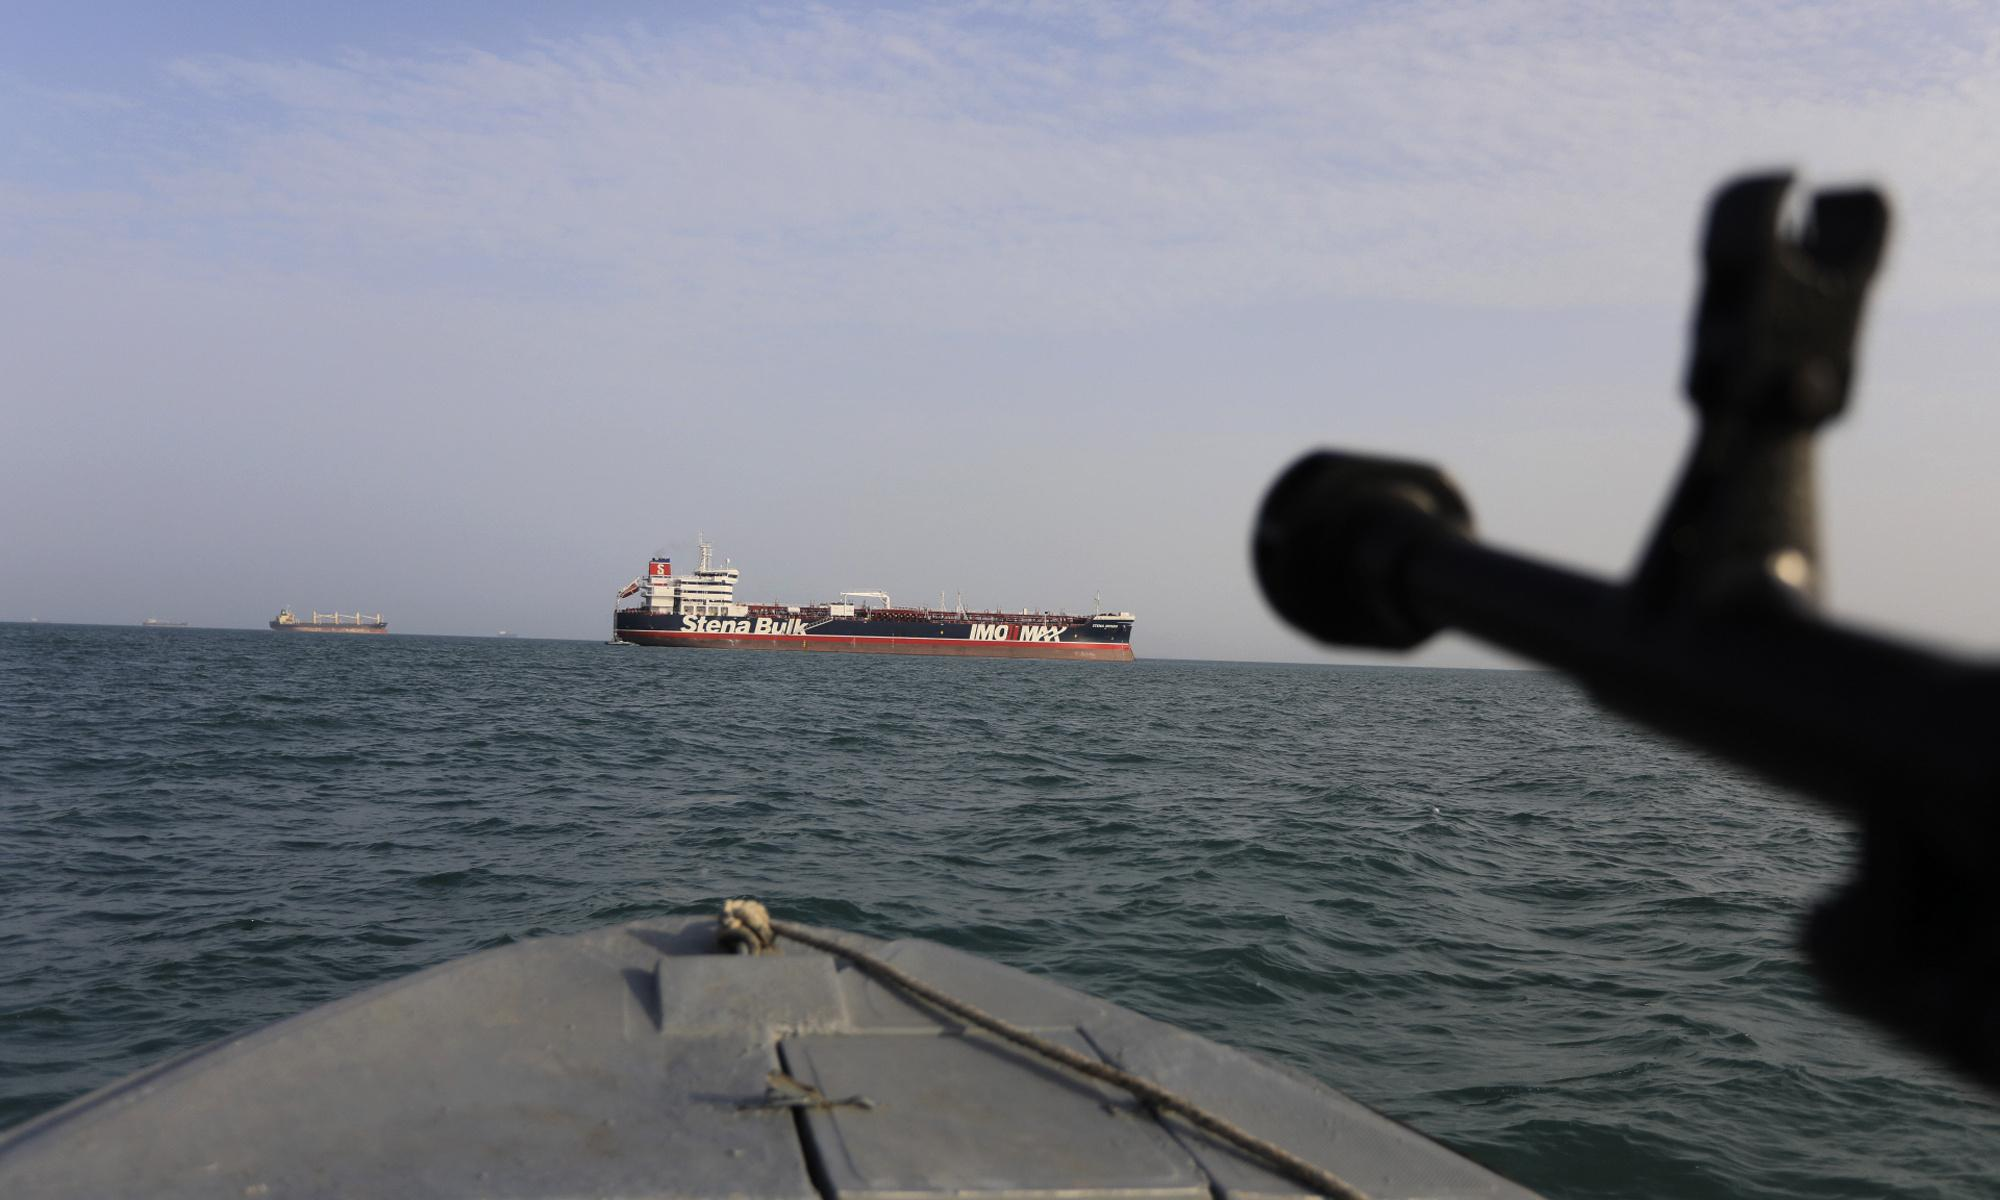 Political opportunism feeding rising tensions with Iran